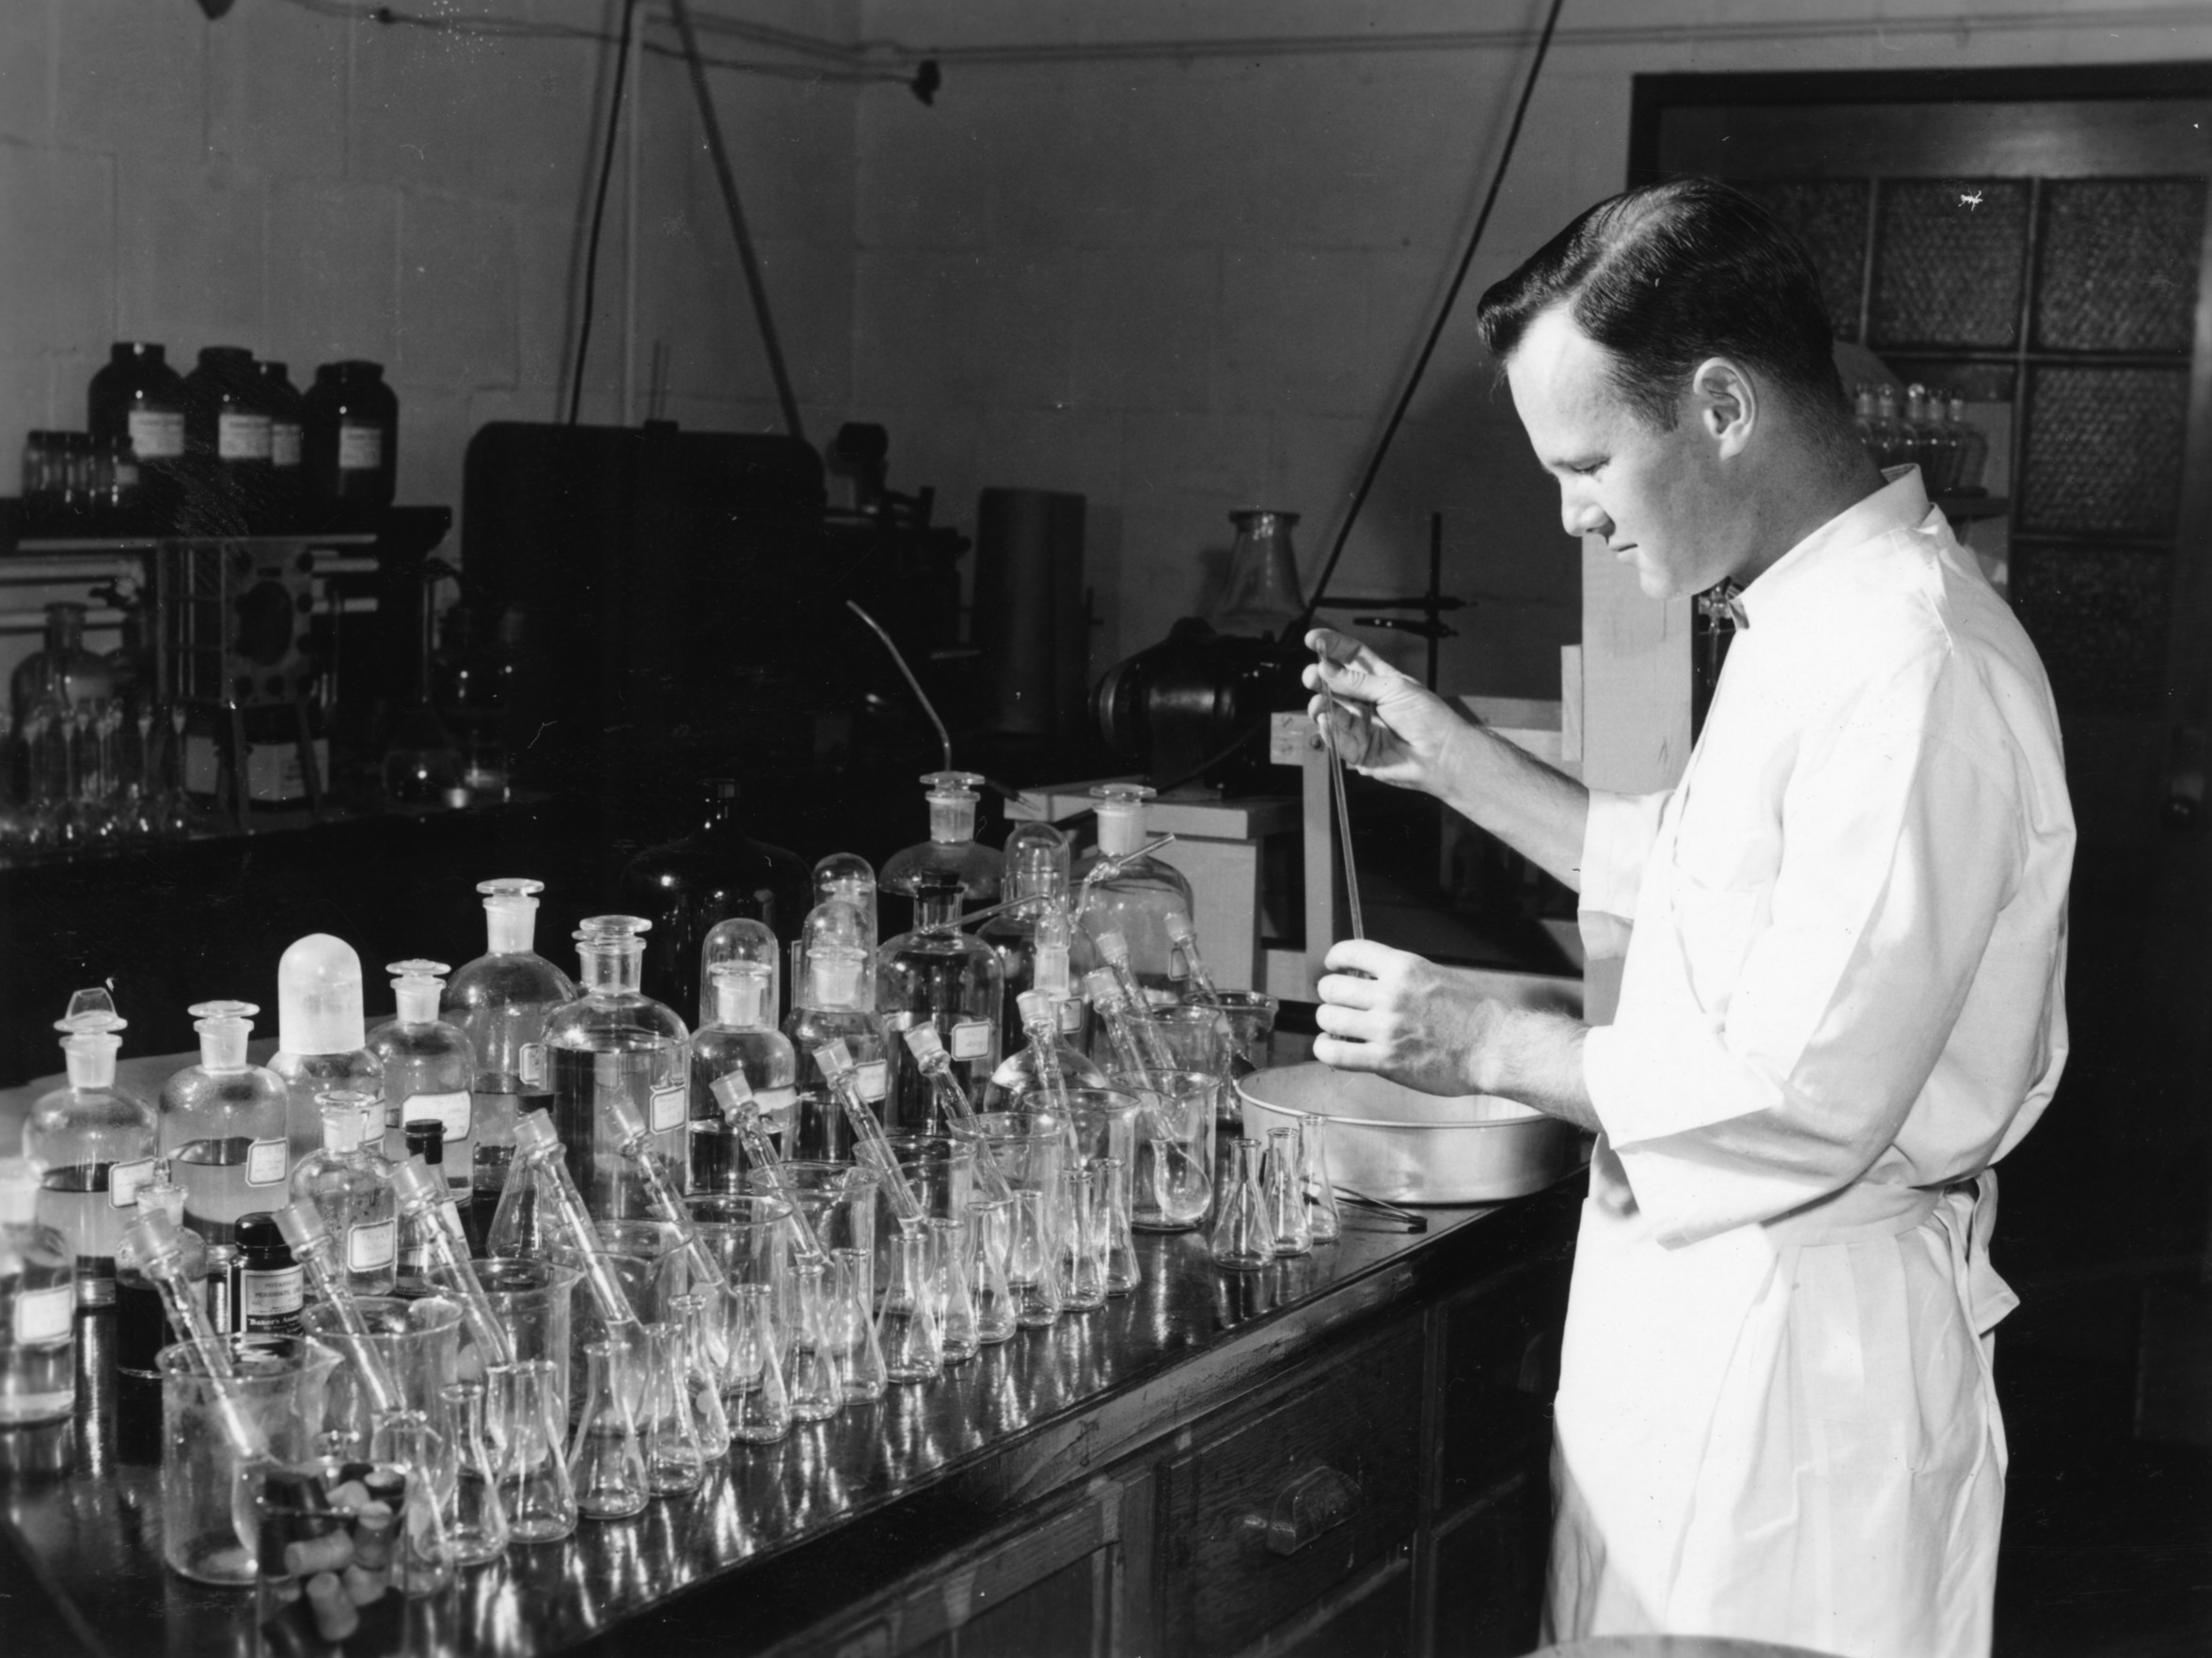 Unidentified man working in a laboratory